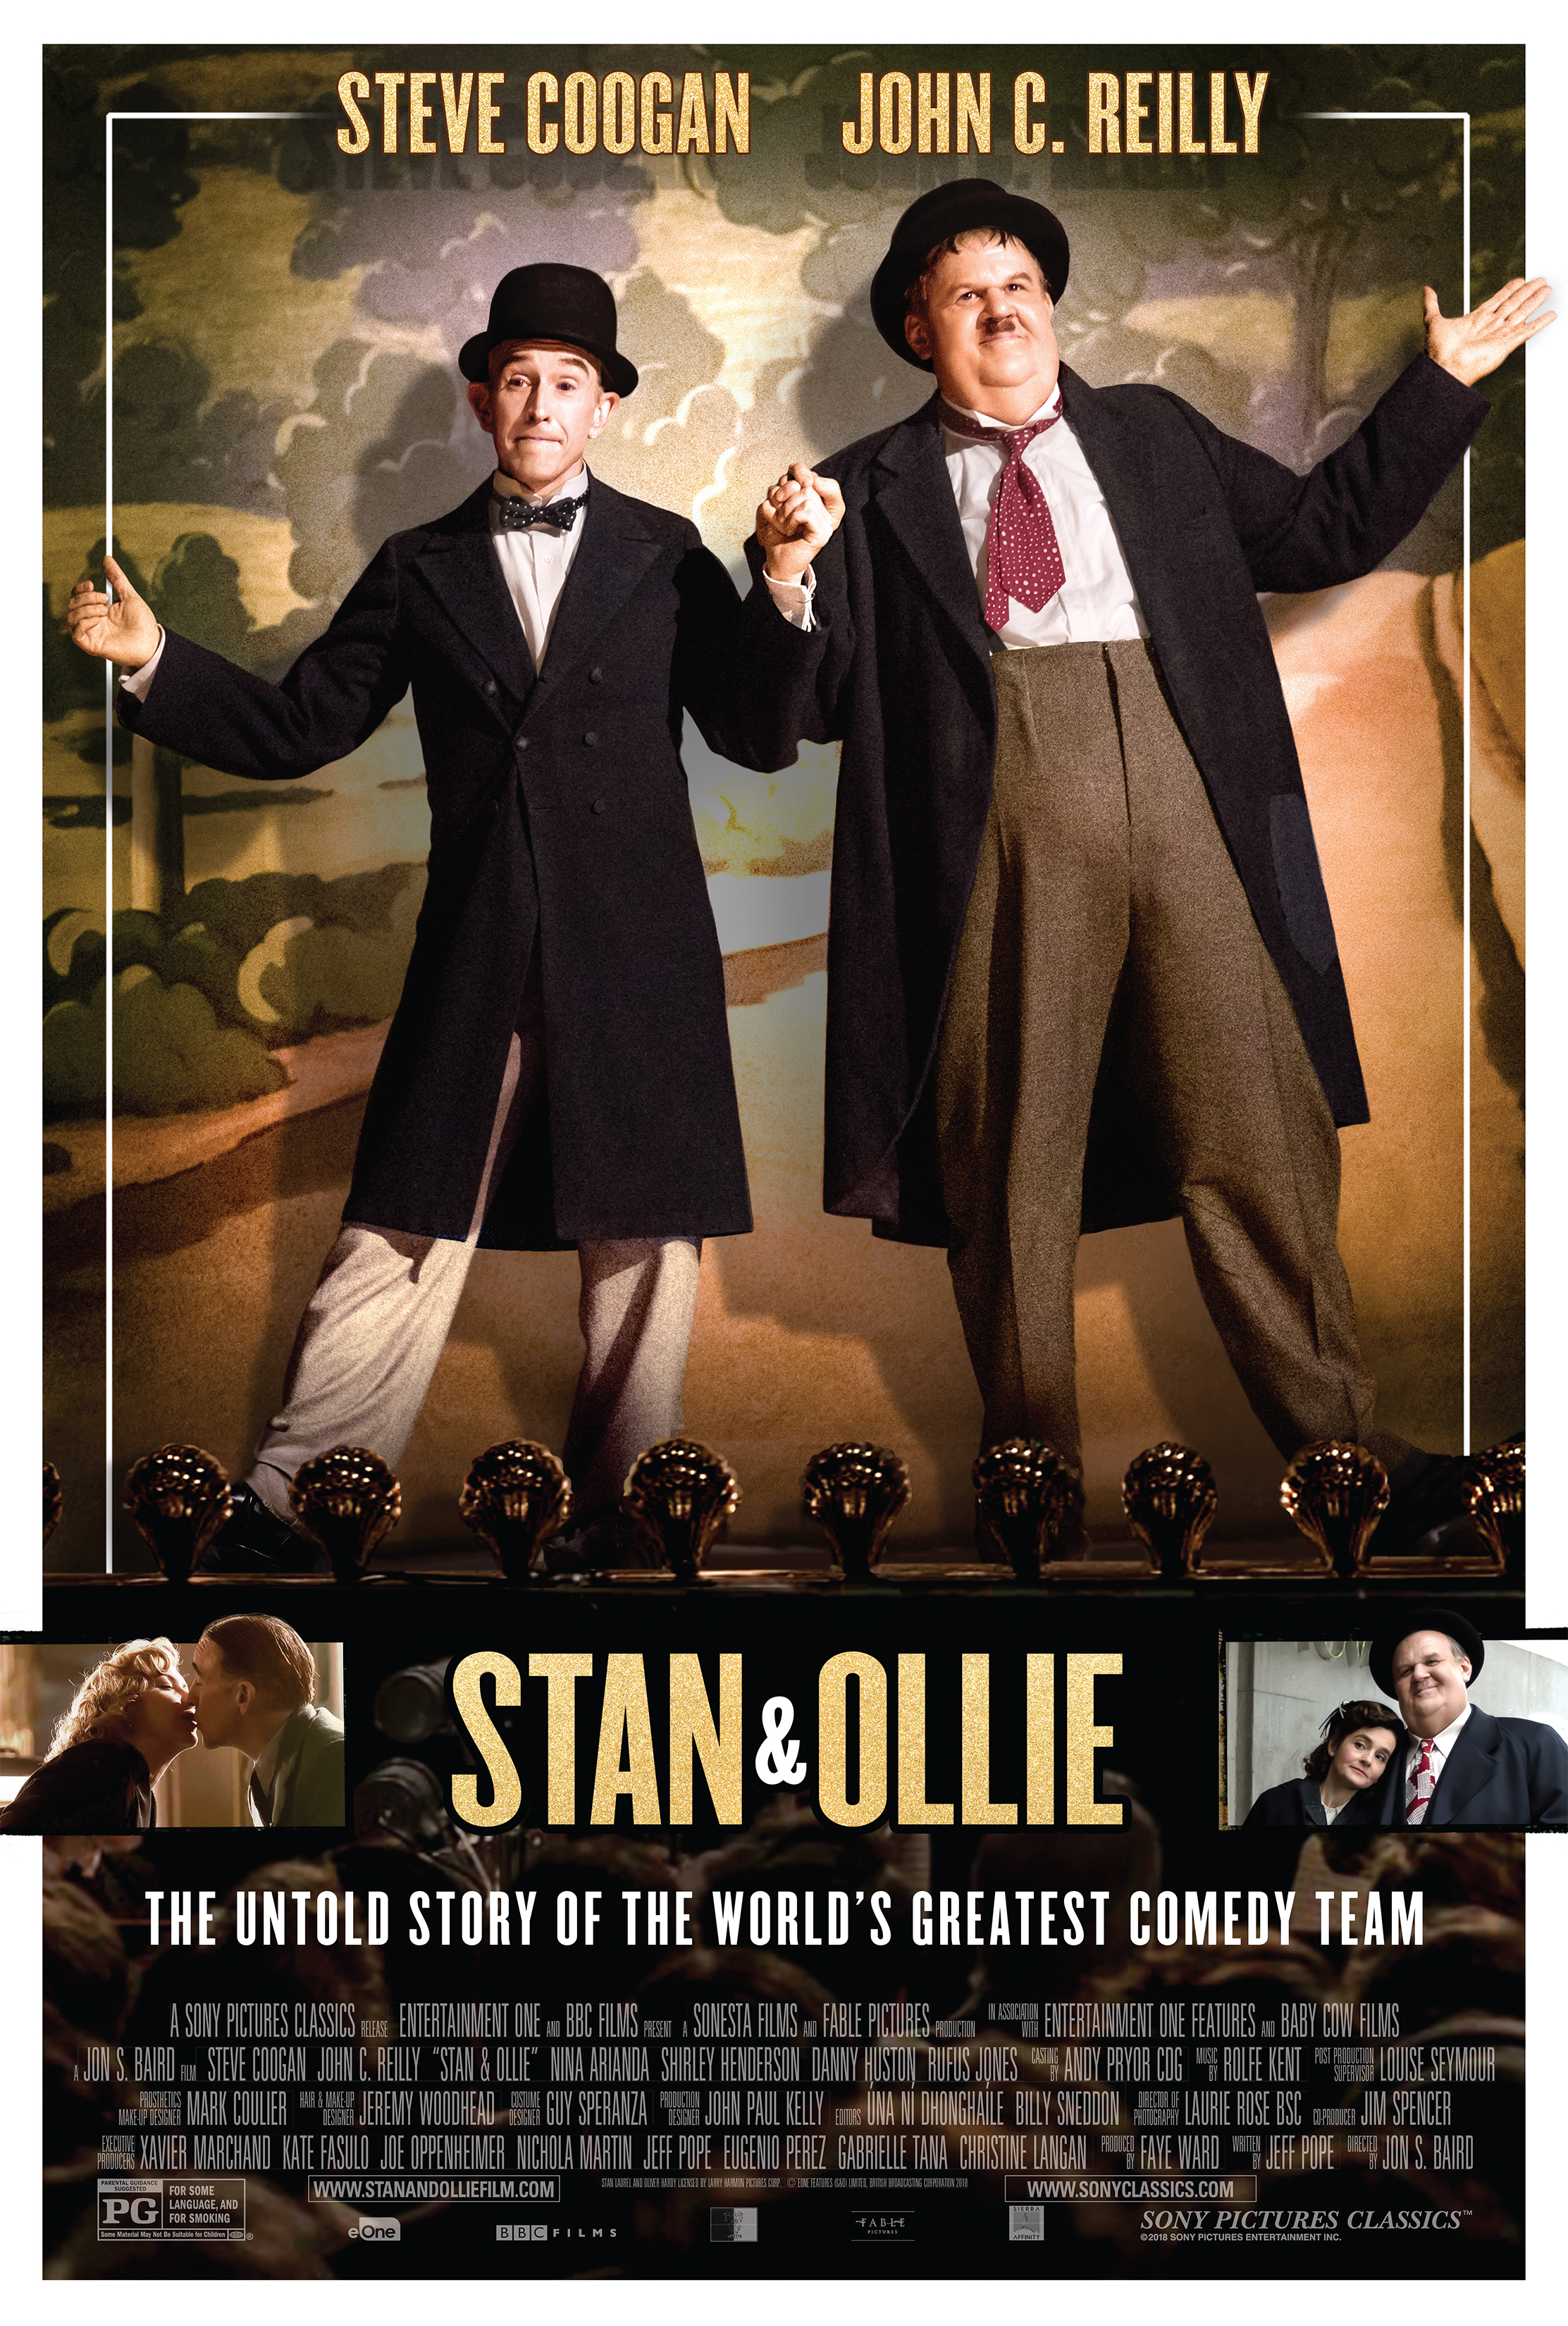 STAN AND OLLIE (2018)